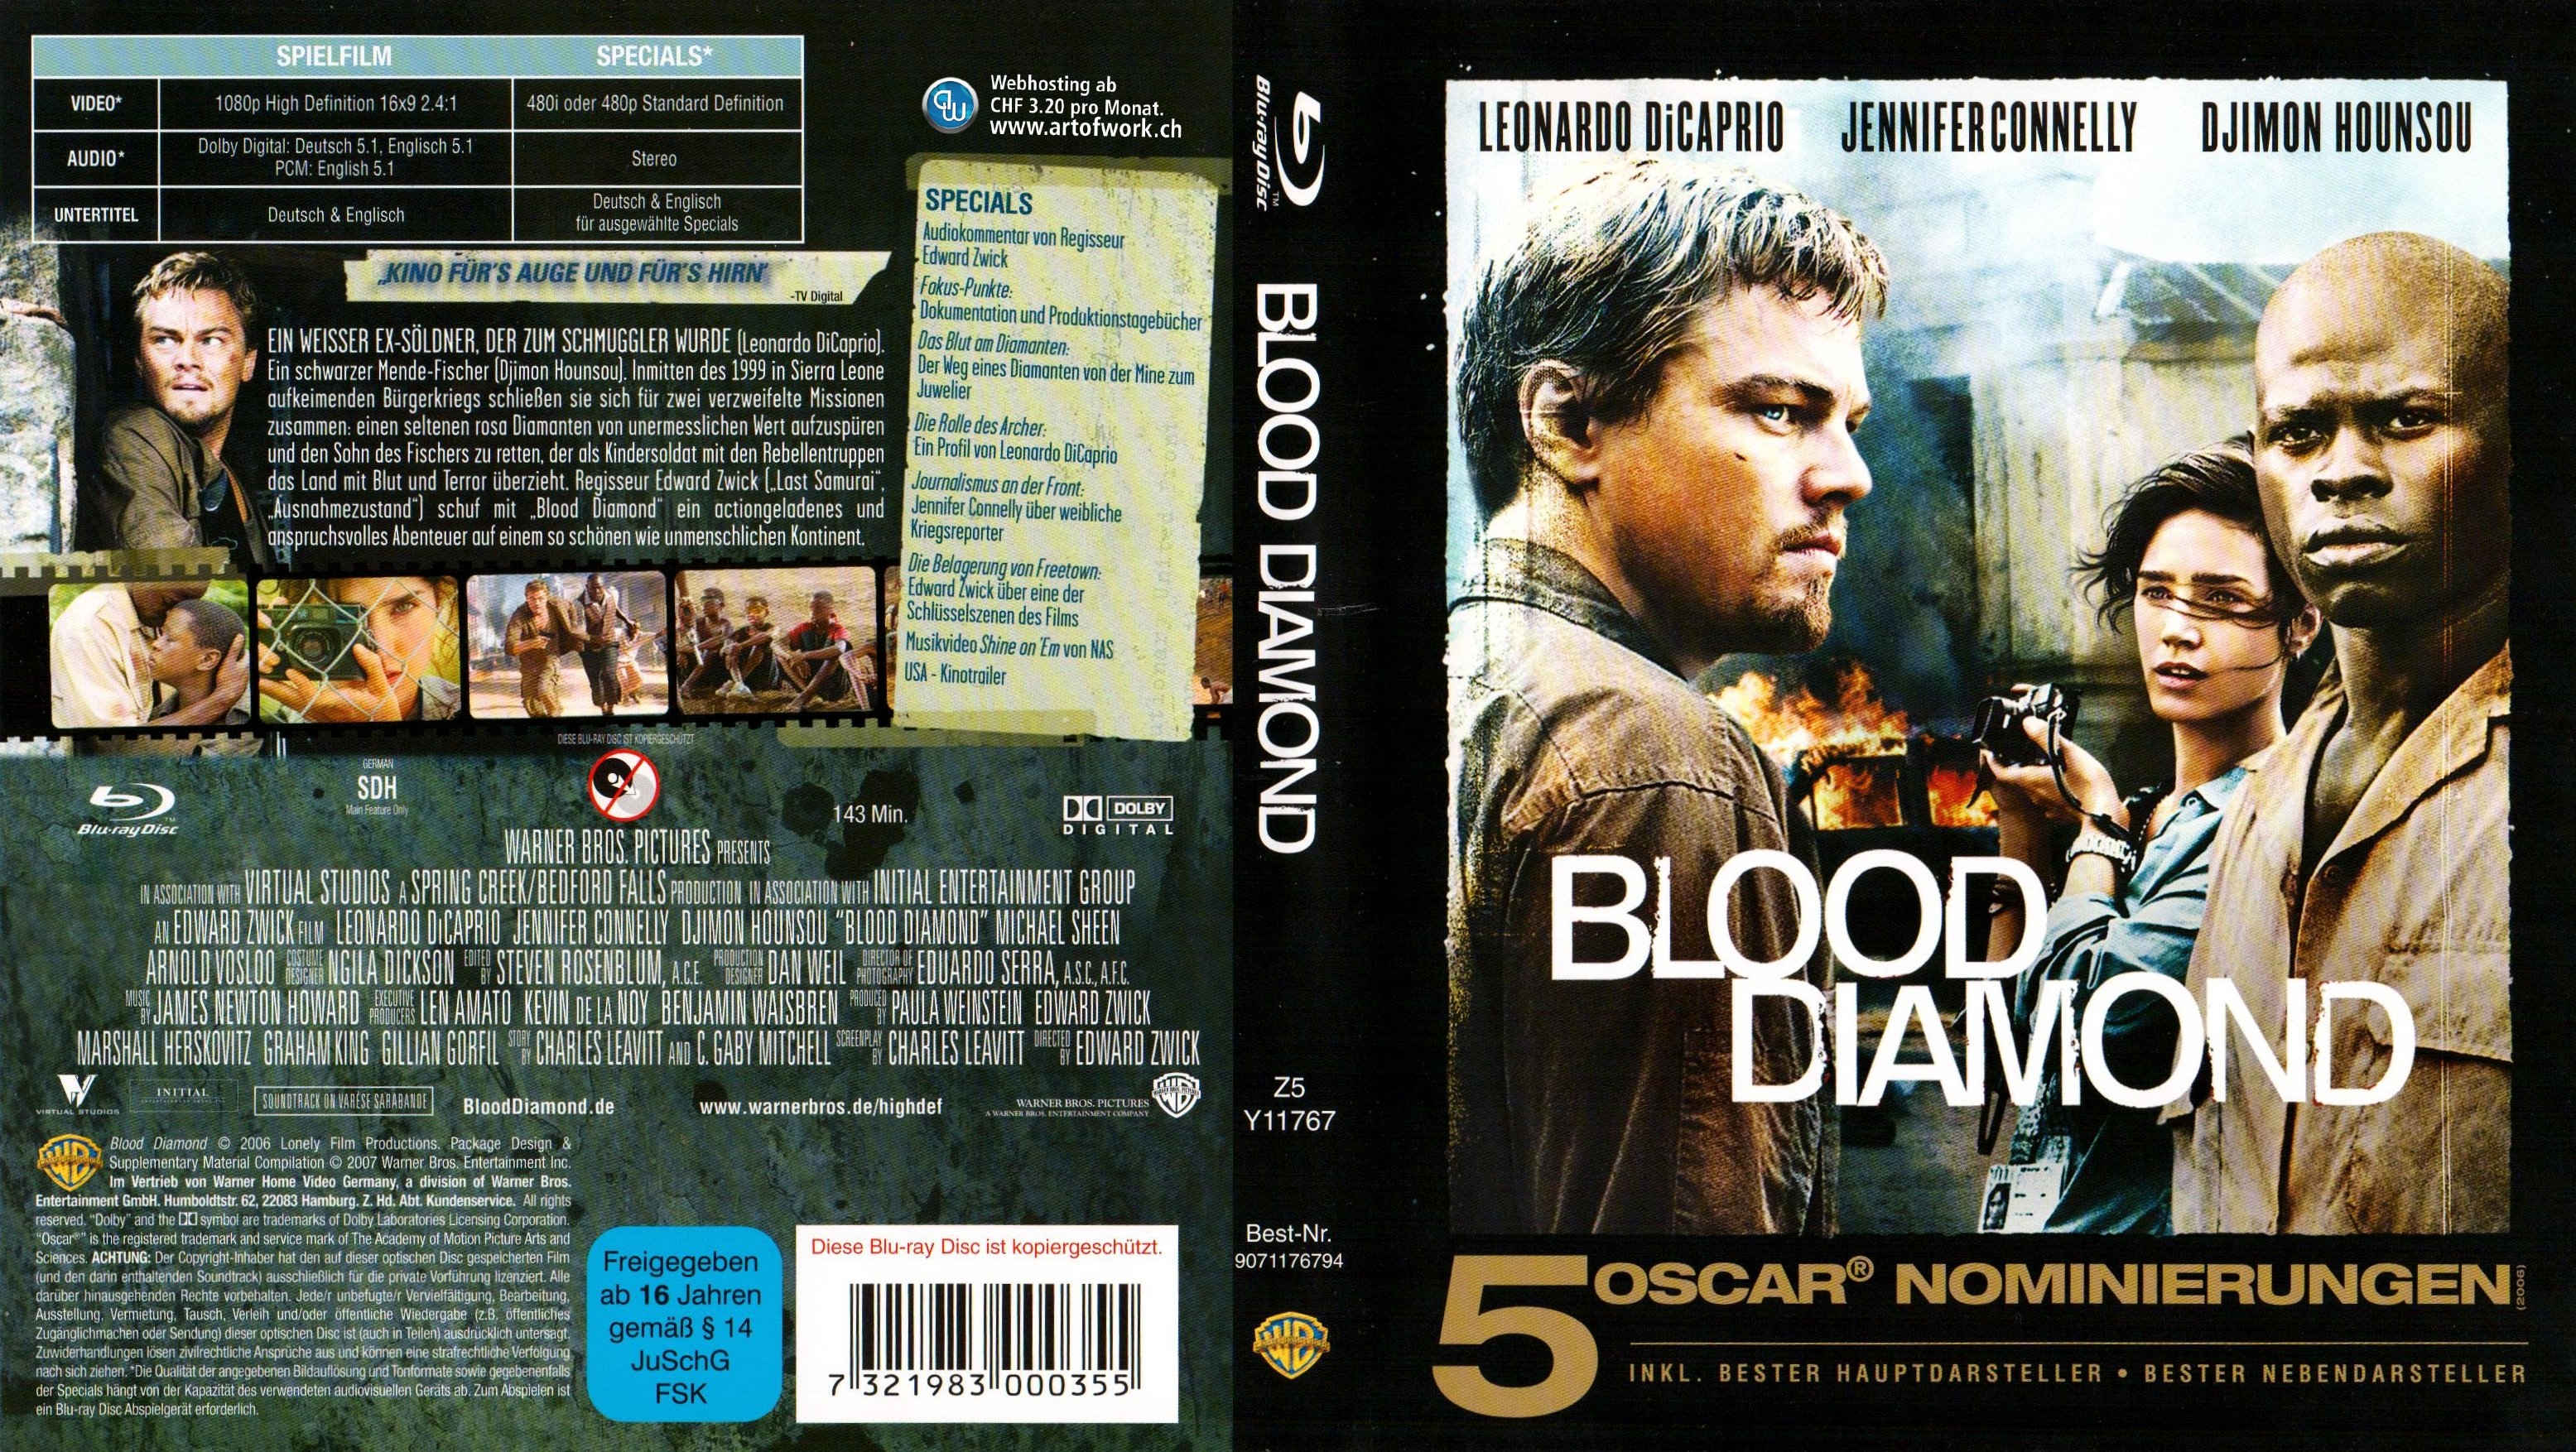 diamond youtube blood official trailer watch leonardo dicaprio movie